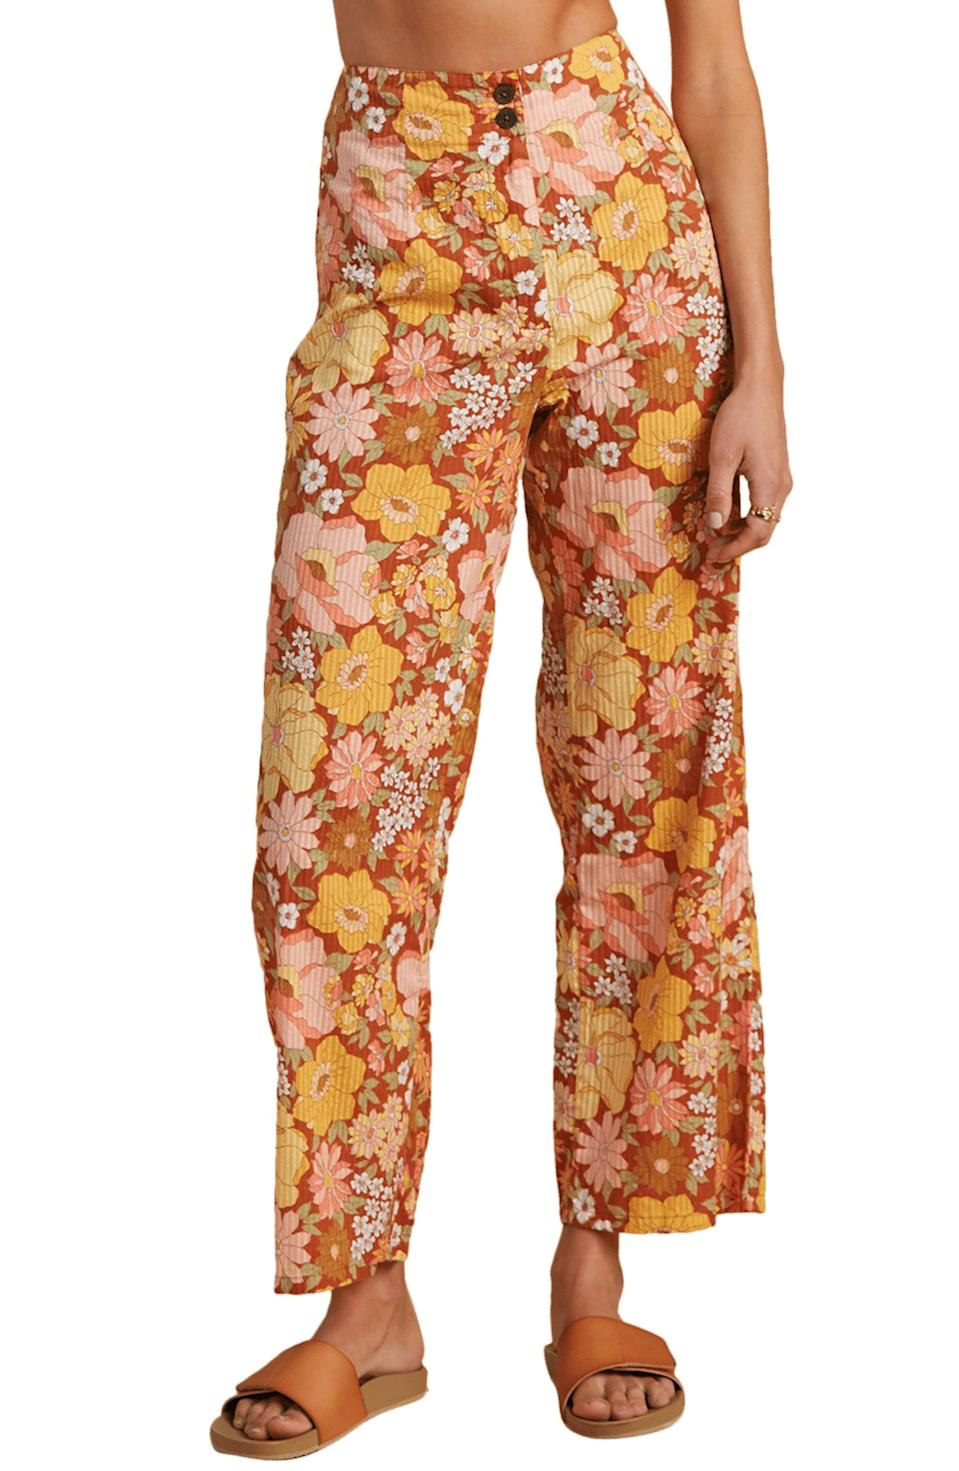 <p>Bring on the beachy vibes with this lightweight <span>Billabong x The Salty Blonde Break Point Floral Print Wide Leg Pants</span> ($86). They feature an adorable retro floral print that'll be sure to earn you tons of compliments.</p>